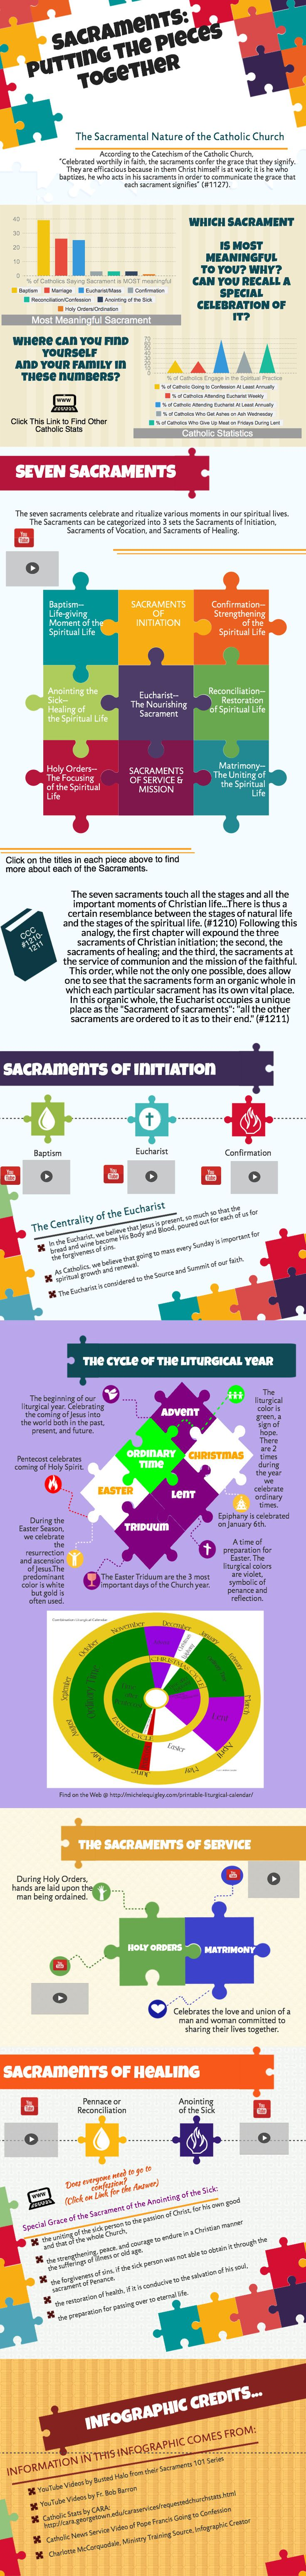 Sacraments: Putting the Pieces Together This info graphic can help anyone learn about what we as Catholics believe about the sacramental nature of the church.